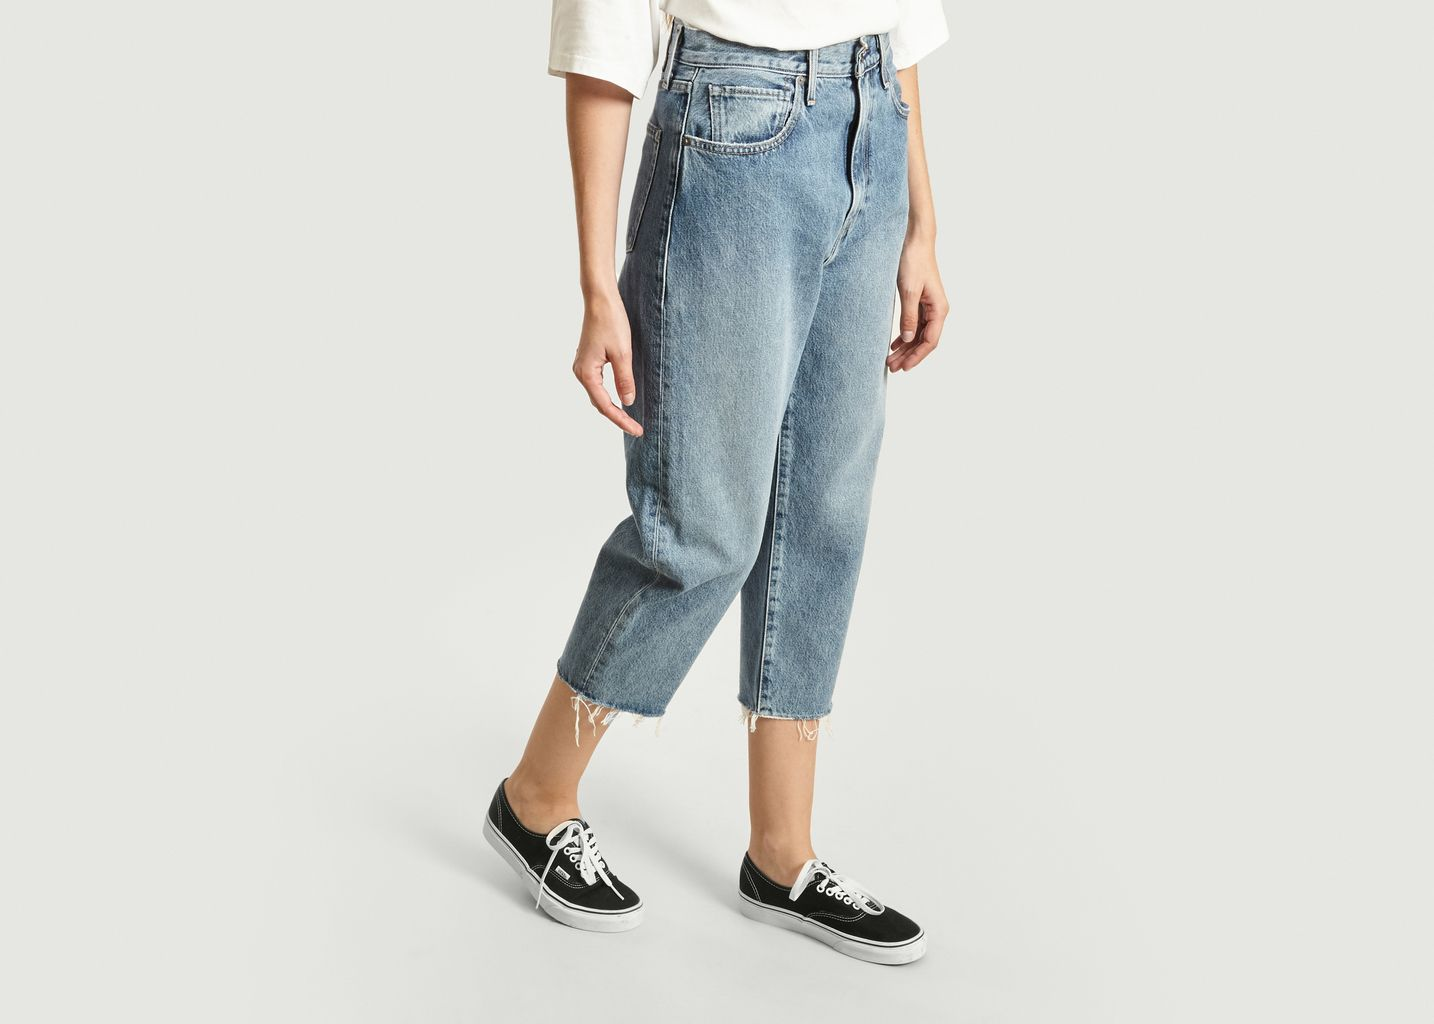 Jean Barrel Relaxed Fit - Levi's M&C